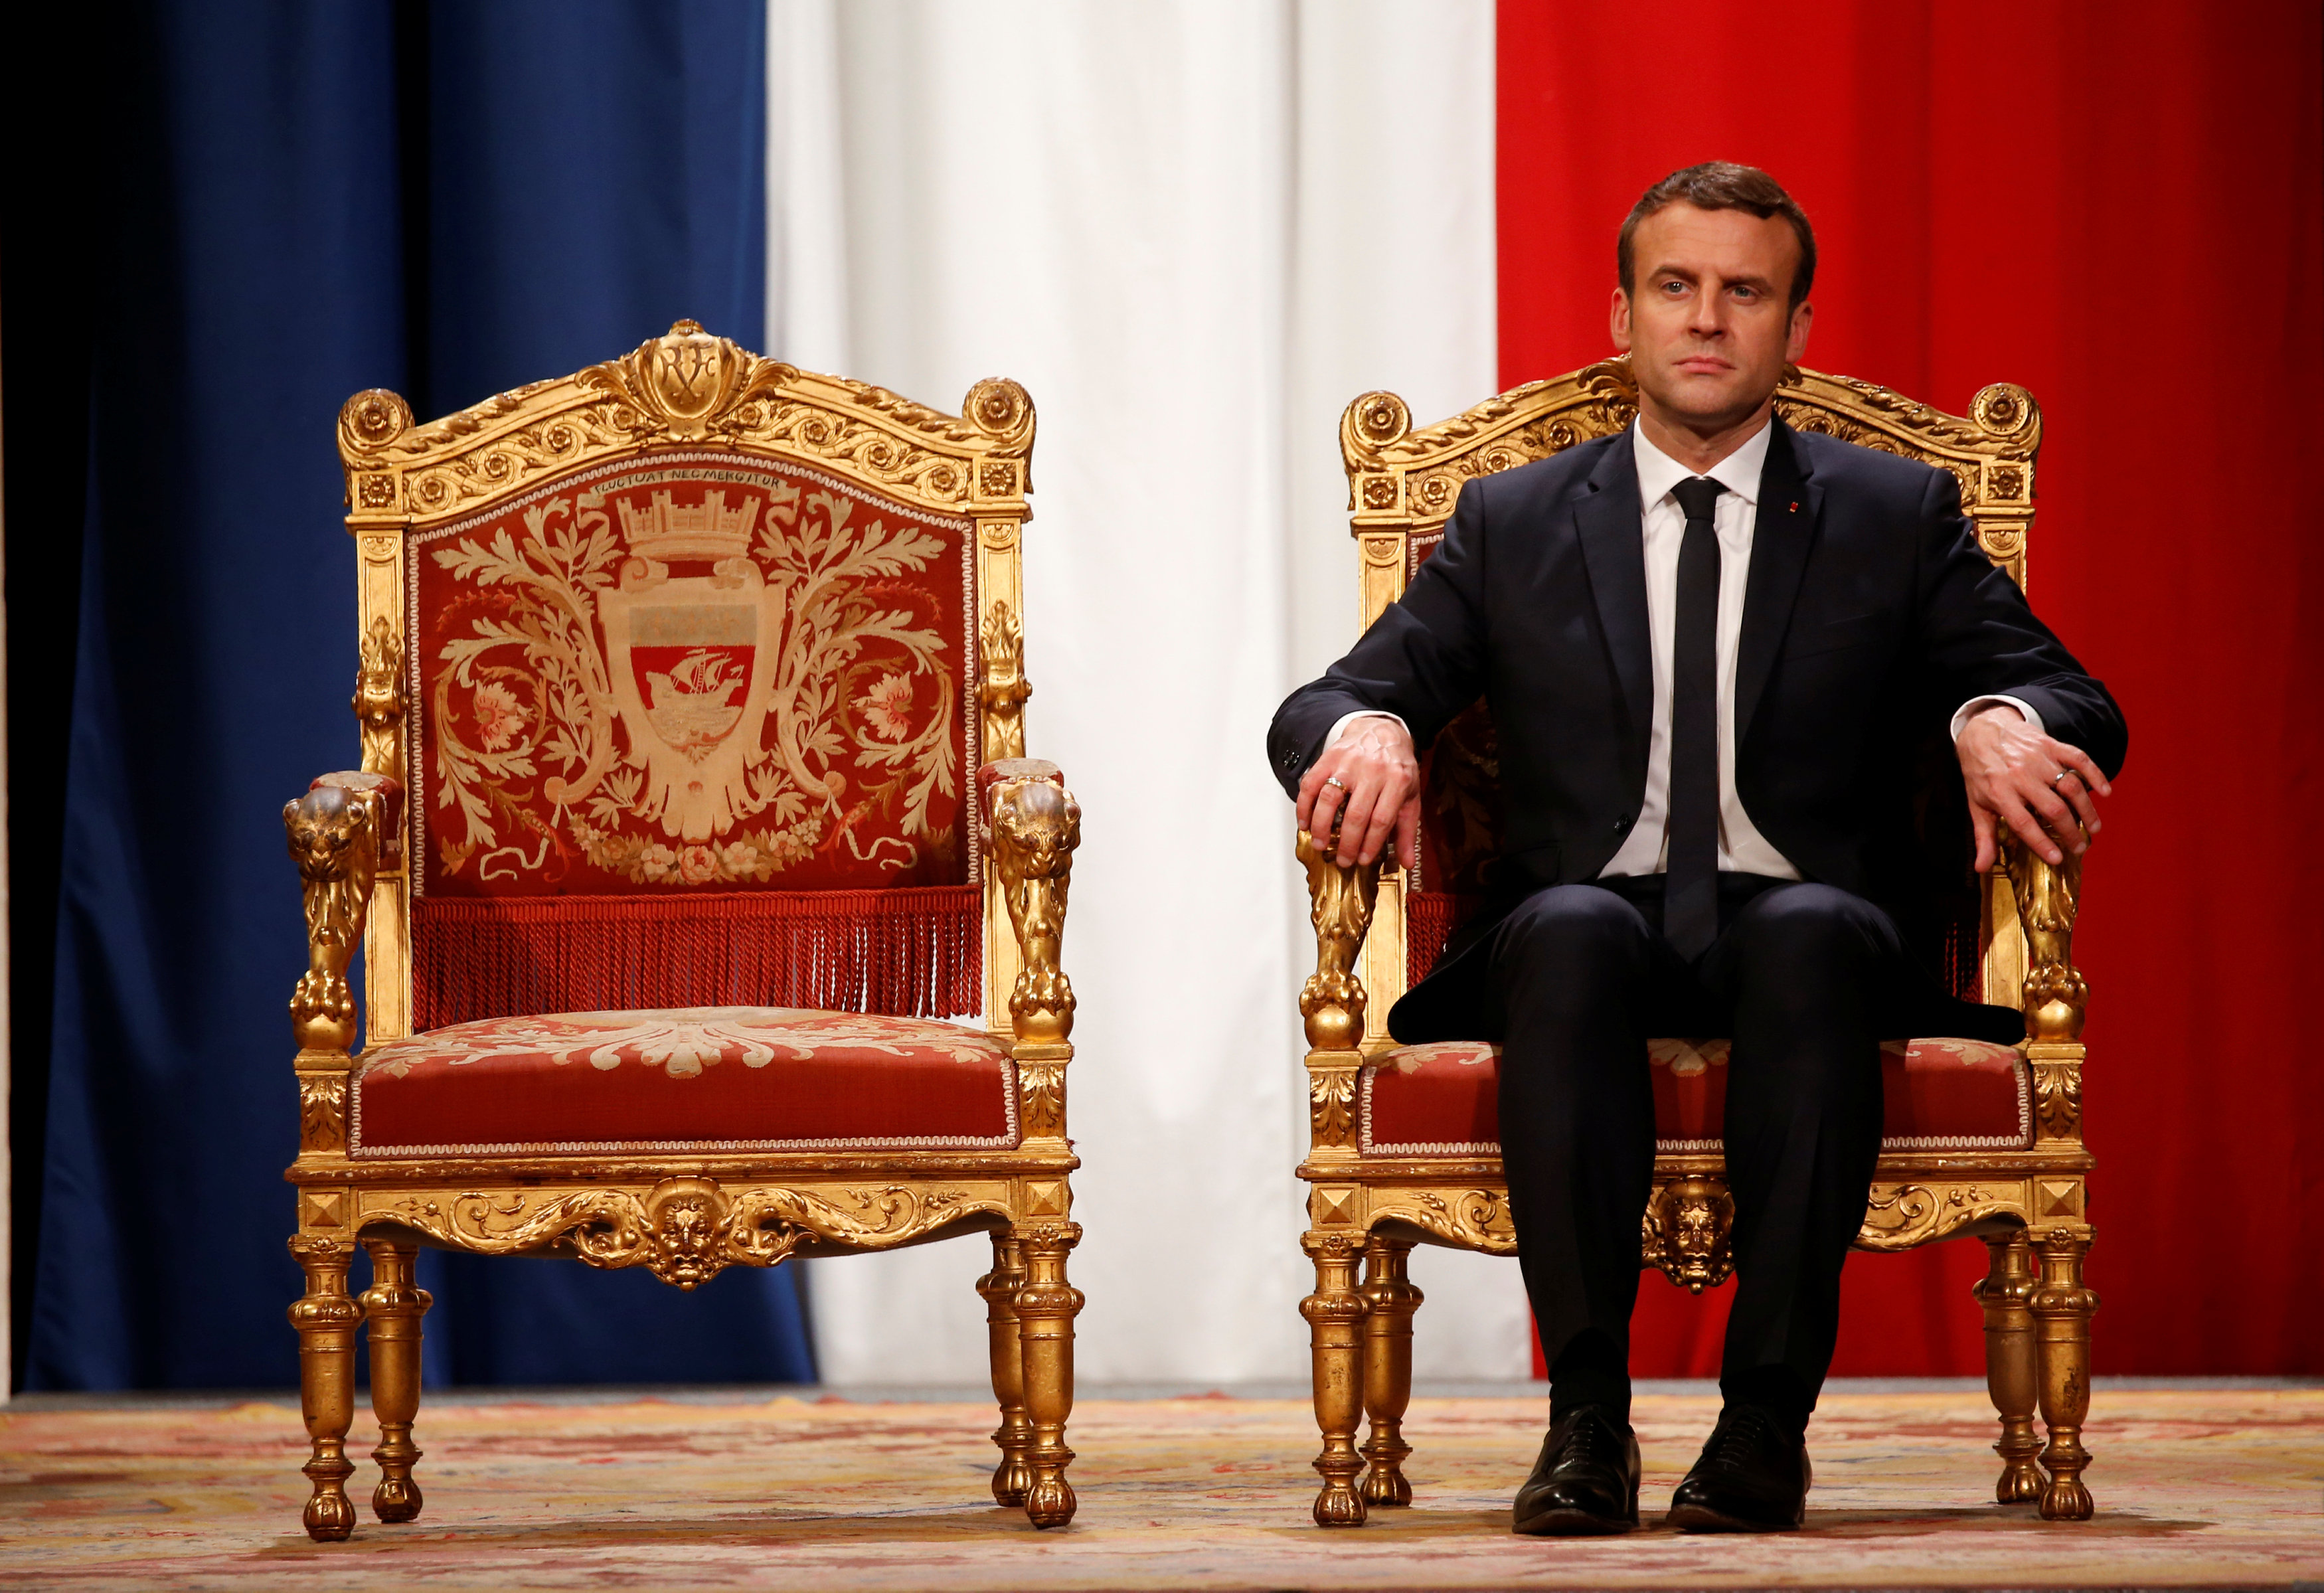 French President Emmanuel Macron listens as Paris Mayor Anne Hidalgo delivers her speech during a ceremony at the Hotel de Ville in Paris, France on May 14, 2017. (REUTERS/Charles Platiau)